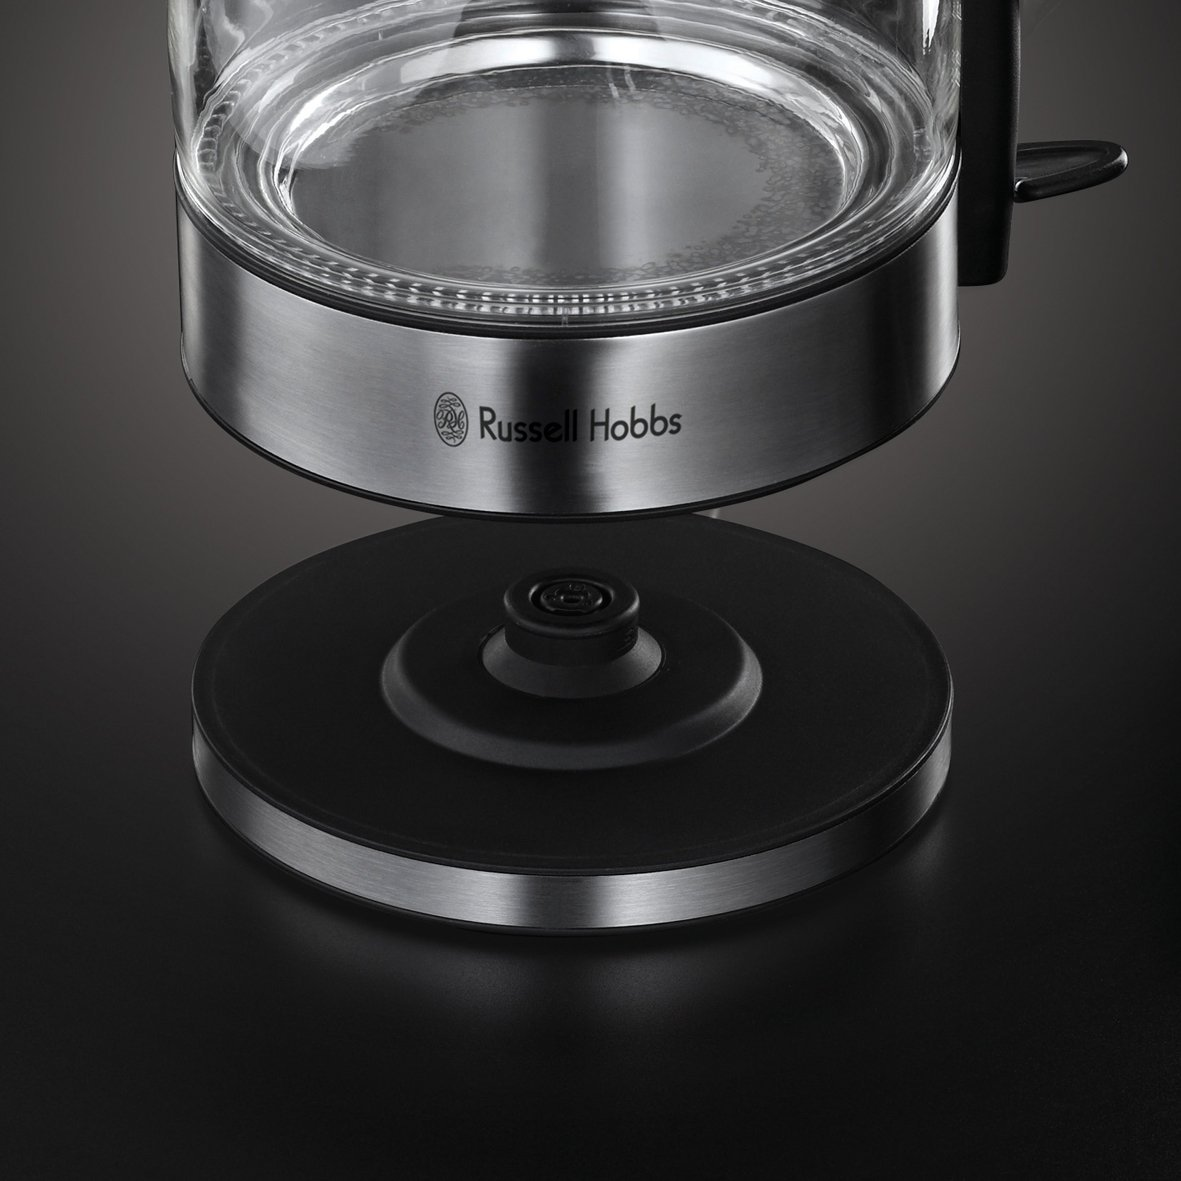 Illuminating Kitchen Lighting: Russell Hobbs 15082 Illuminating Glass Kettle